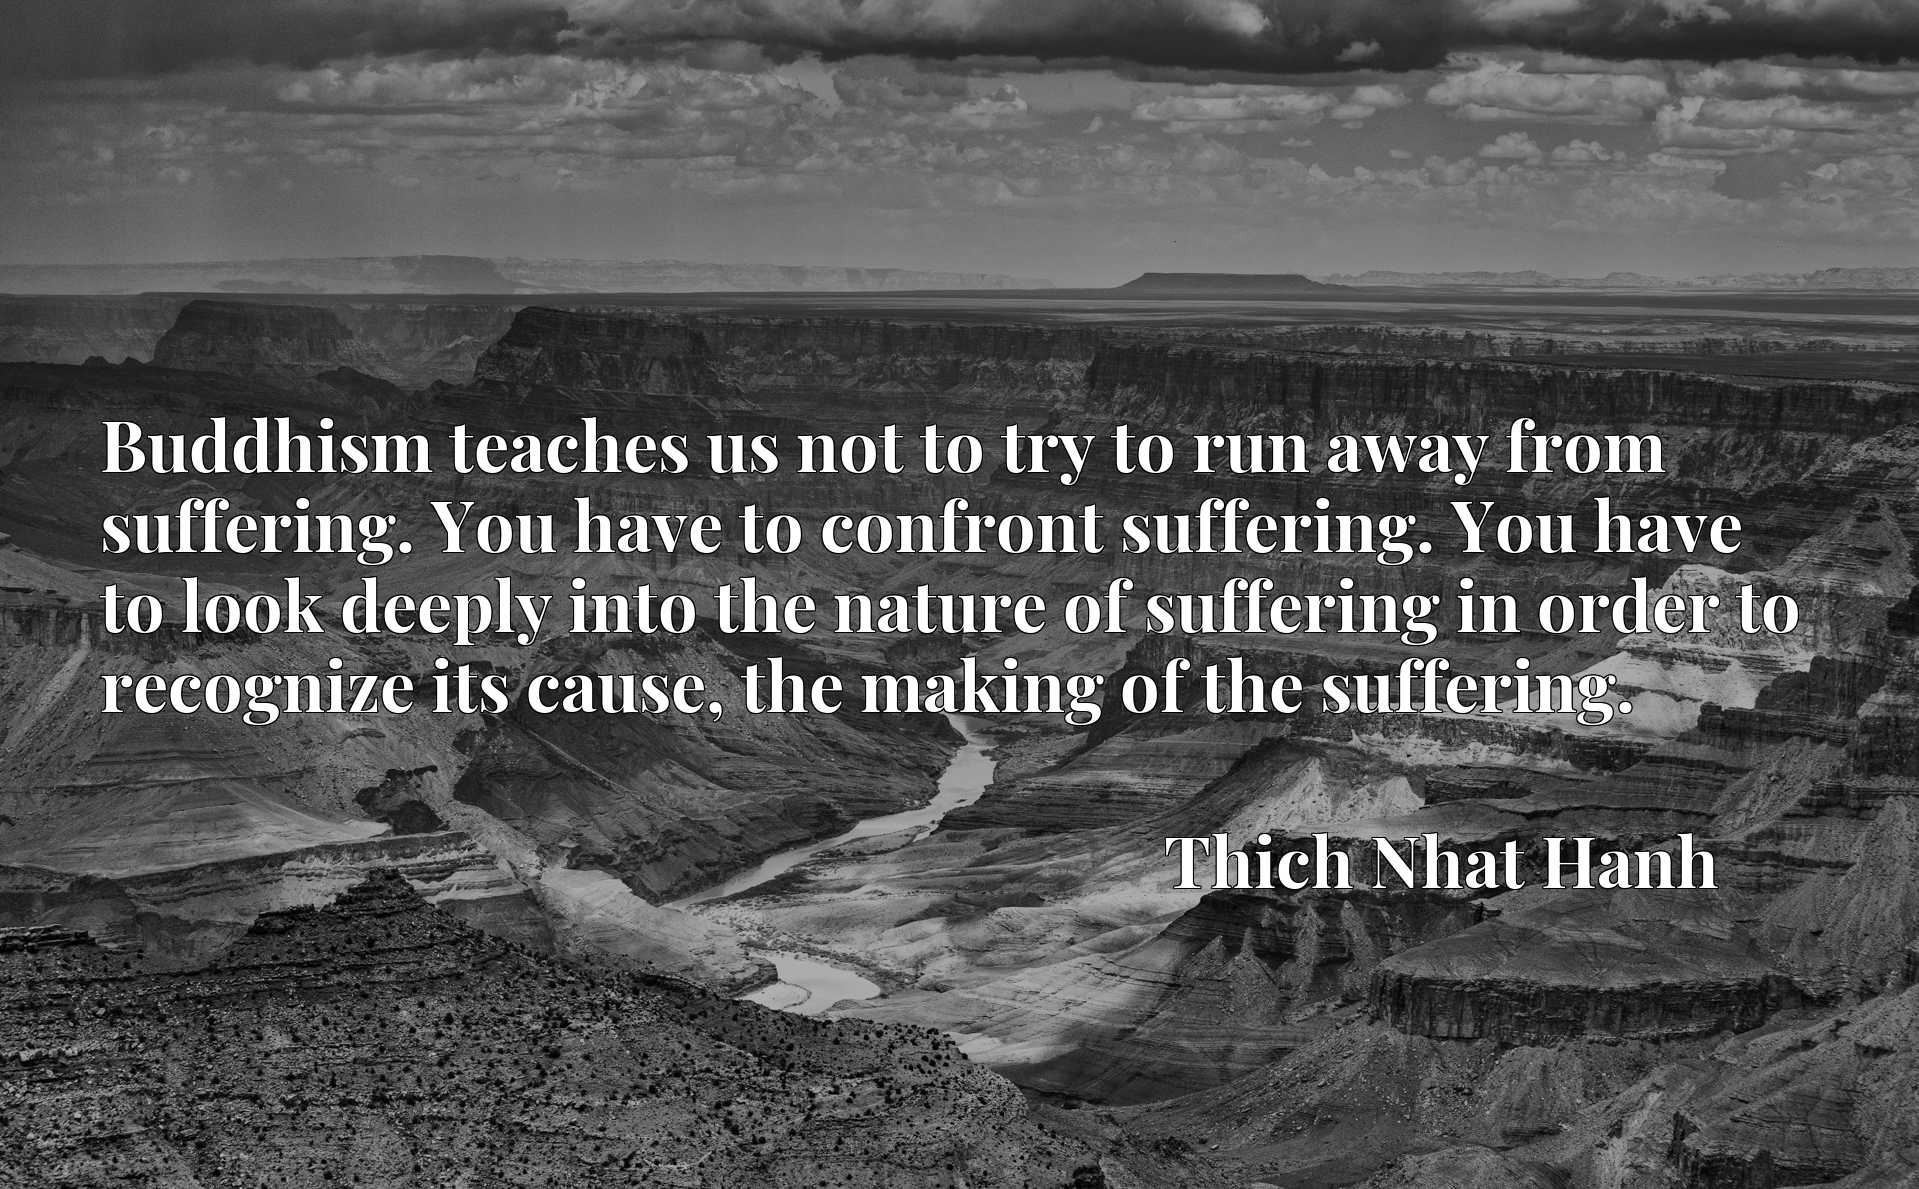 Buddhism teaches us not to try to run away from suffering. You have to confront suffering. You have to look deeply into the nature of suffering in order to recognize its cause, the making of the suffering.